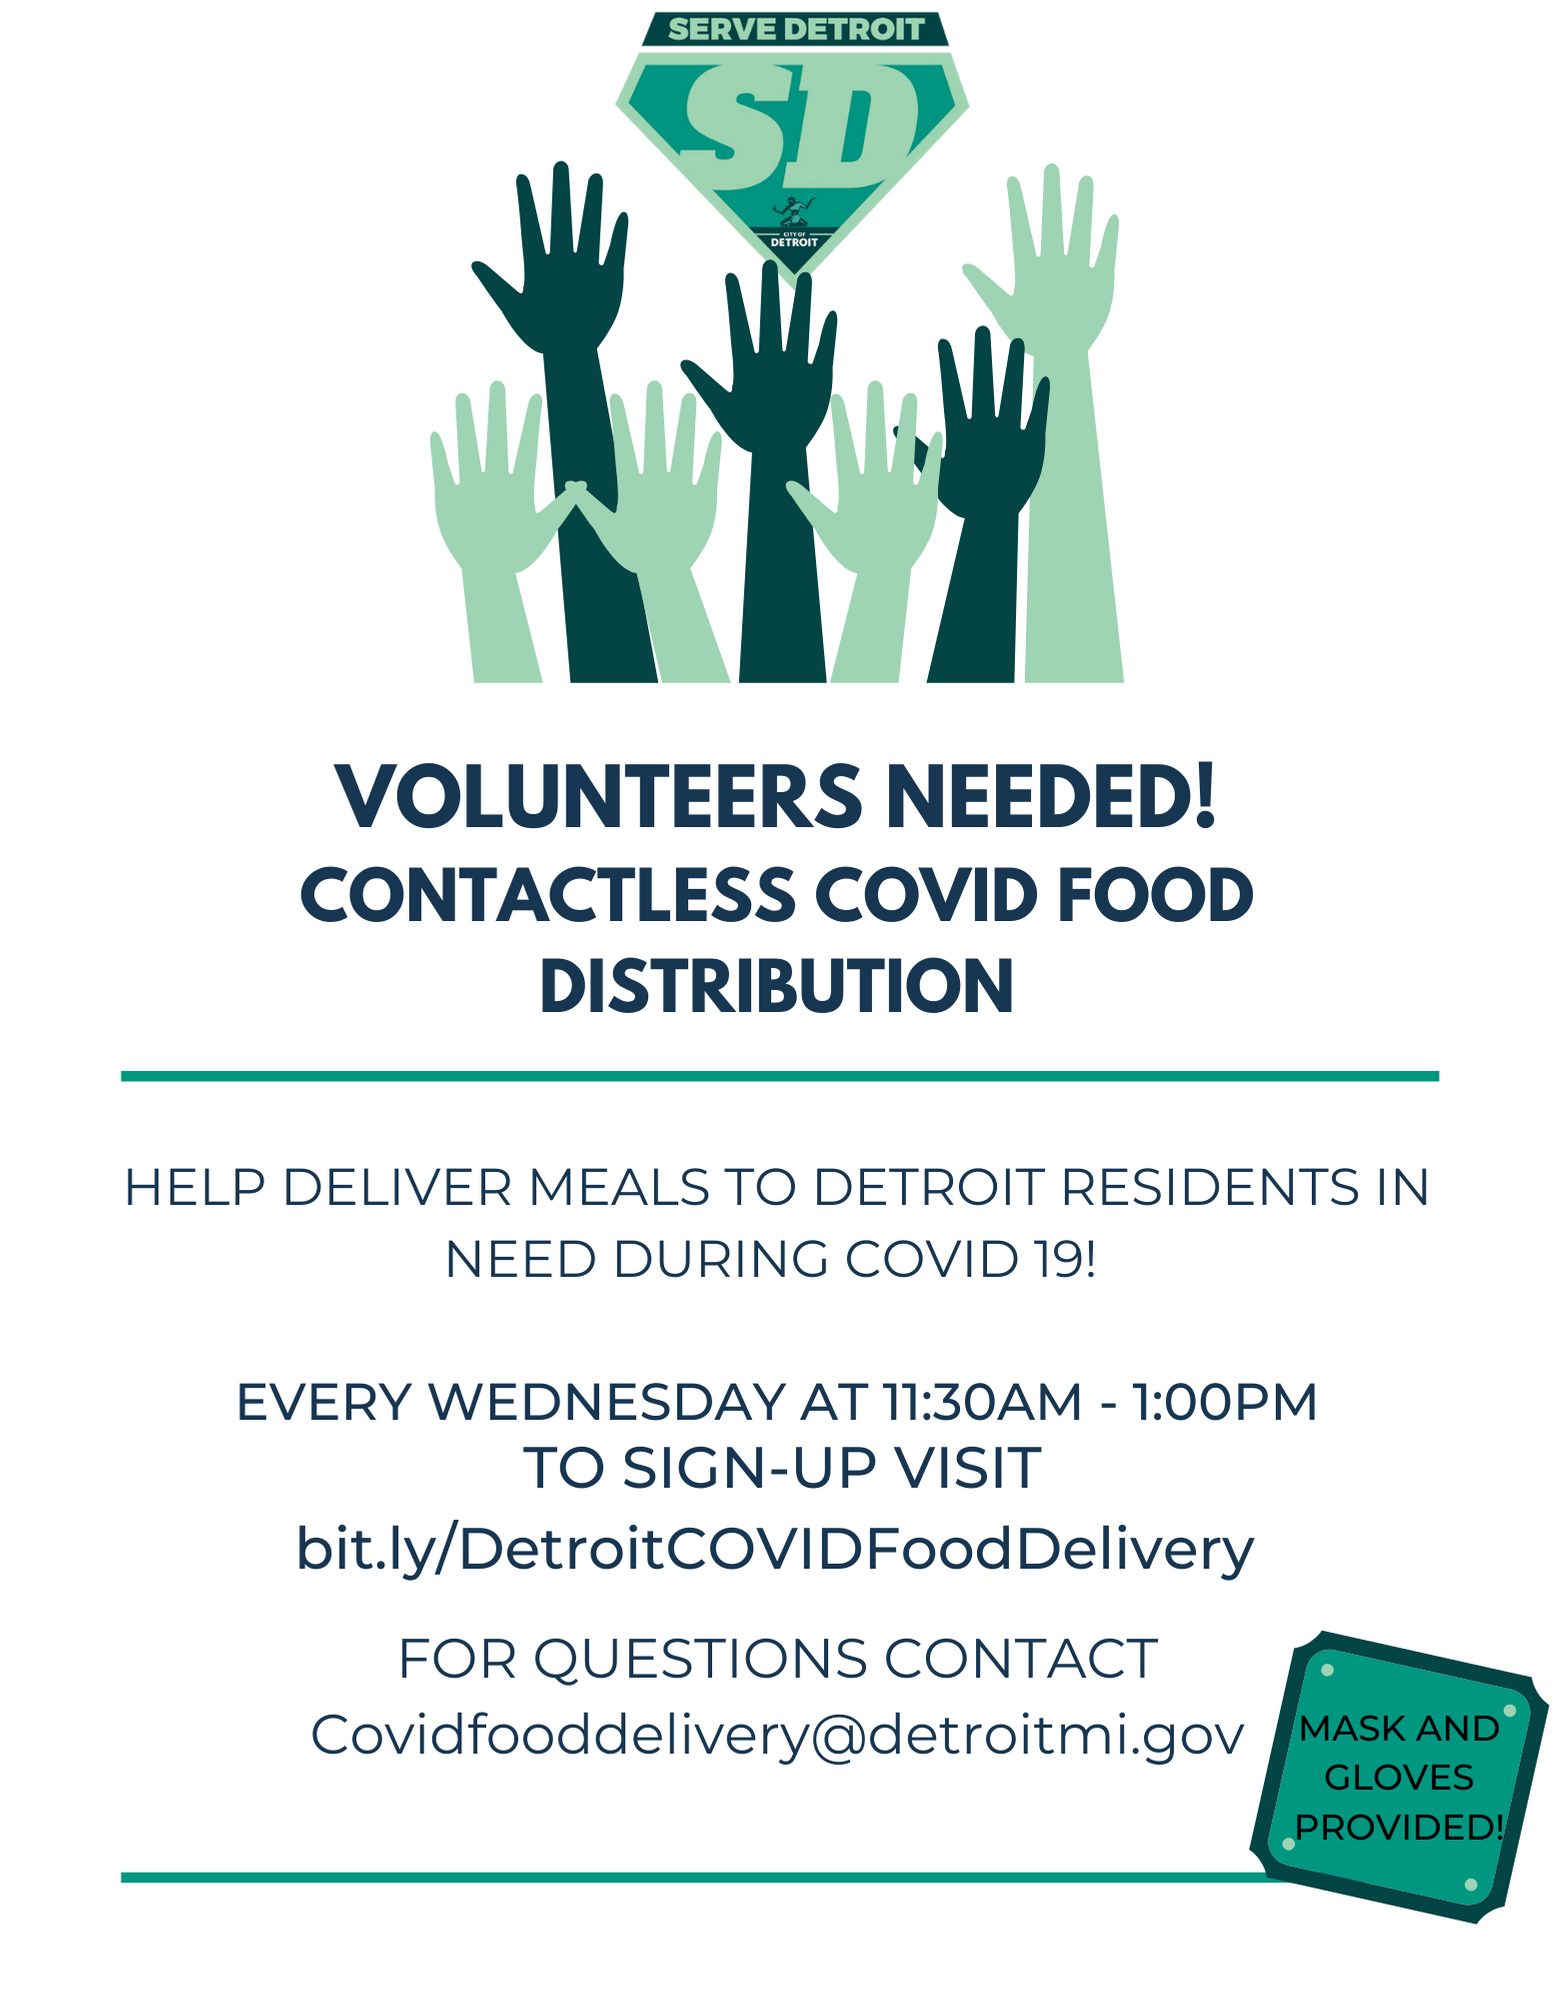 COVID-19 Food Delivery Volunteers Needed